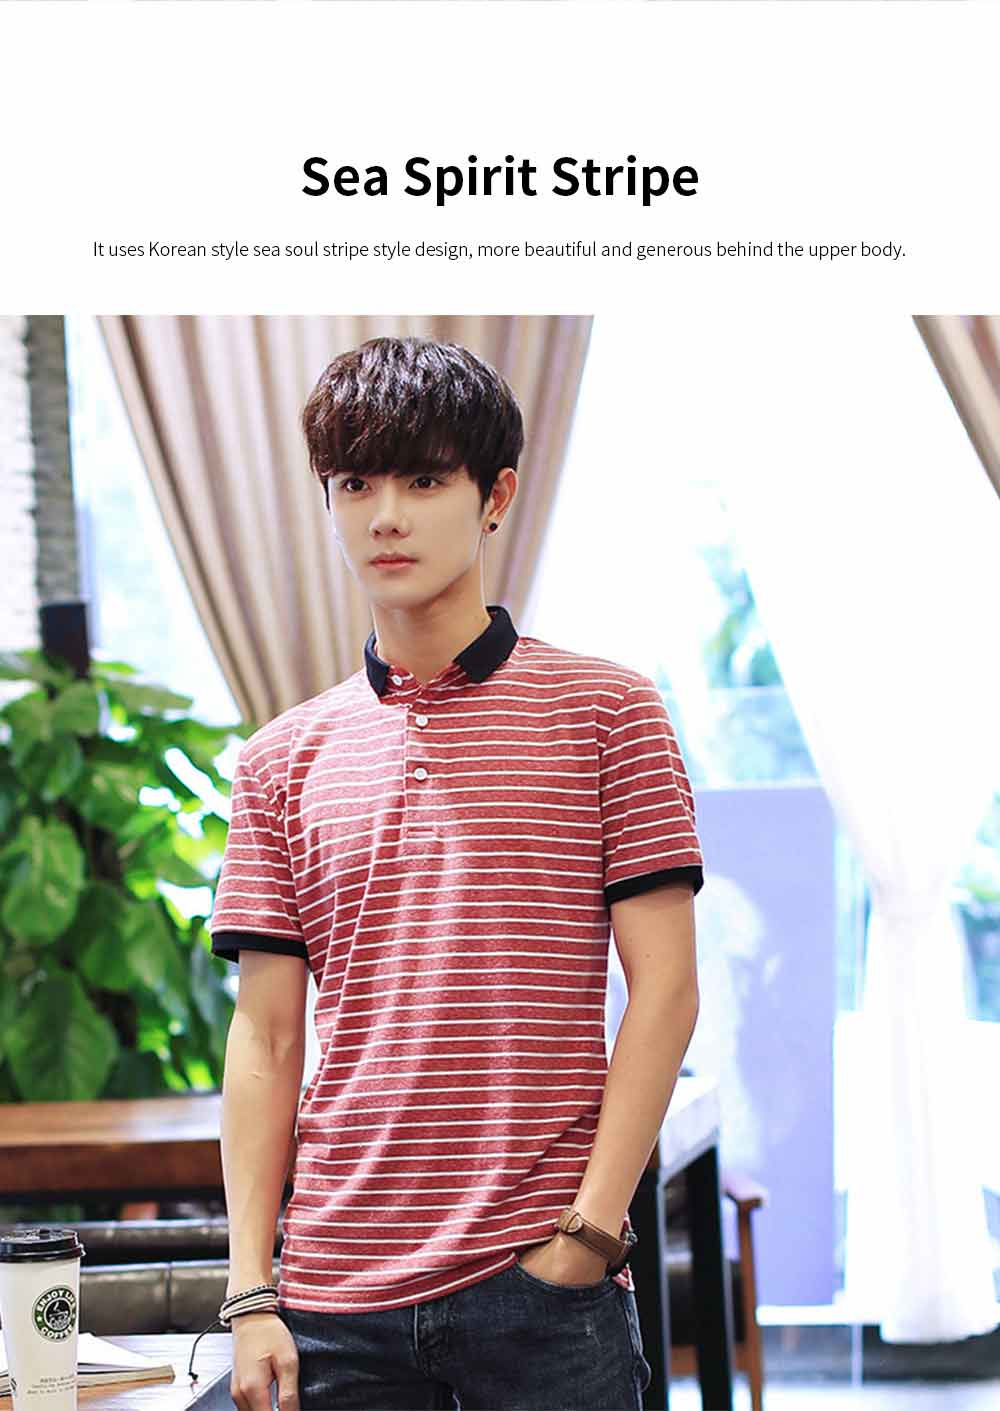 Men's Casual Short-Sleeved Polo Shirt Korean-Style Fashionable Striped Shirt For Summer 2